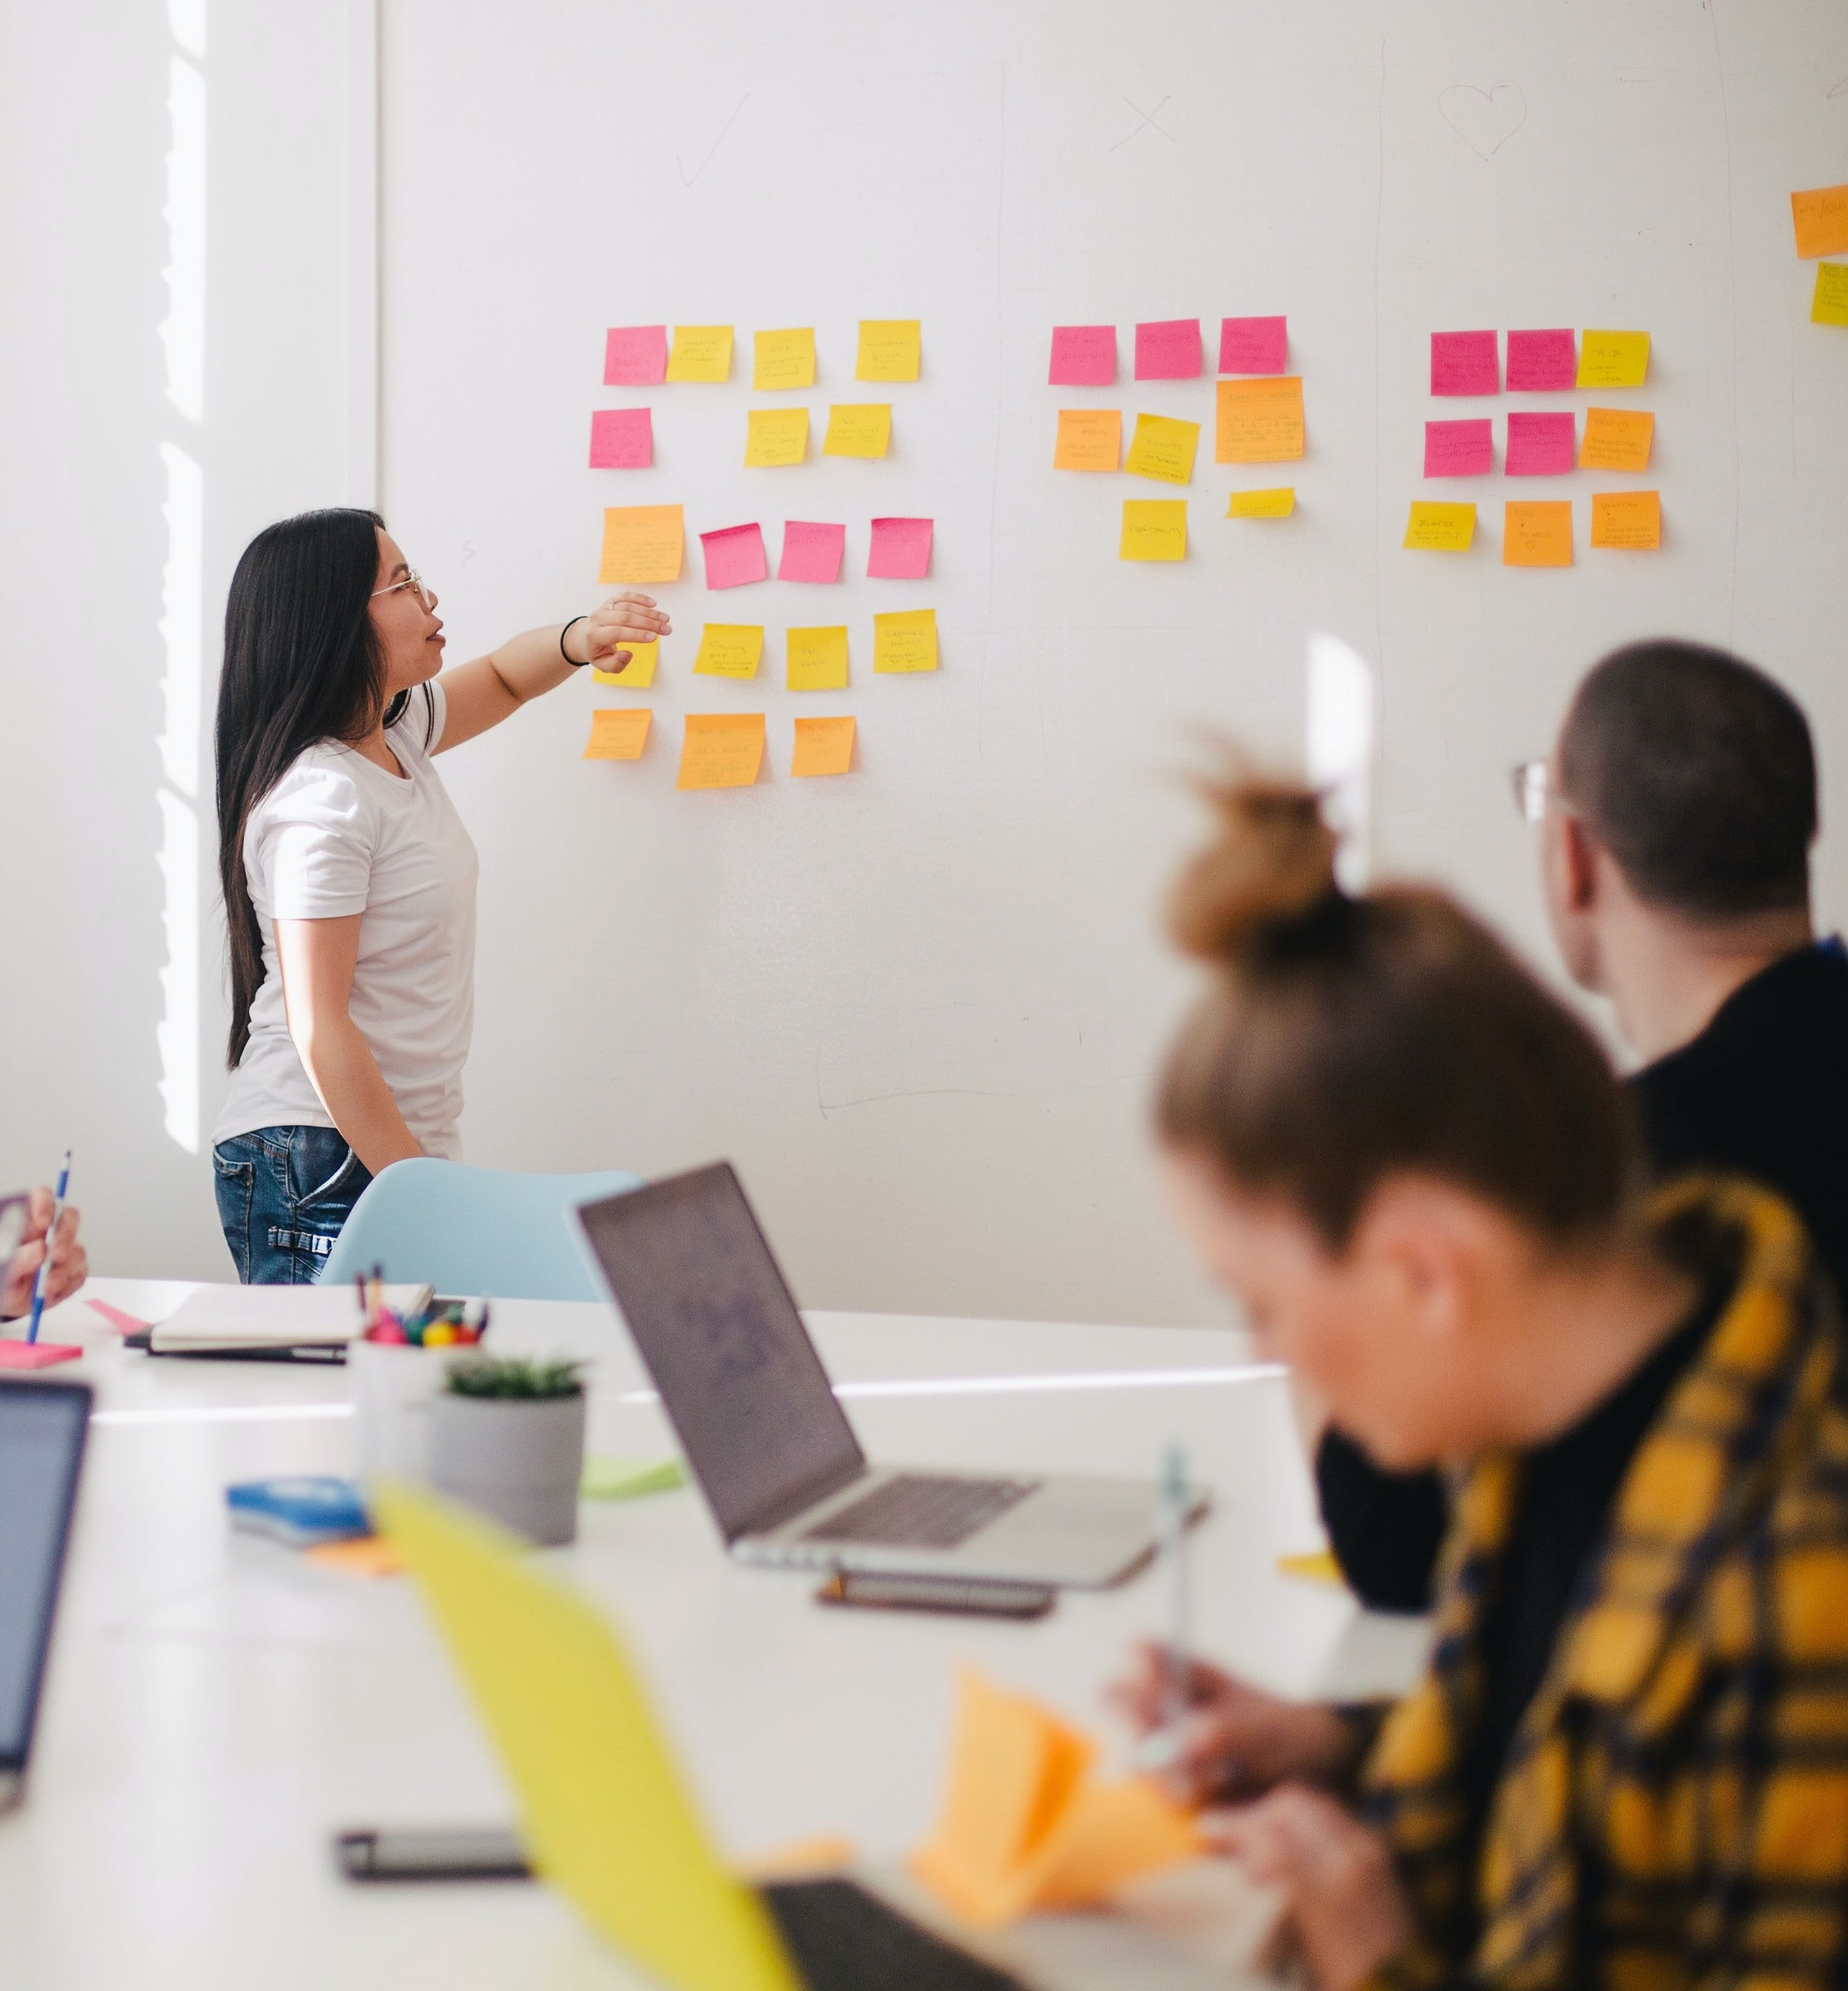 A team discussing and placing sticky notes in a whiteboard